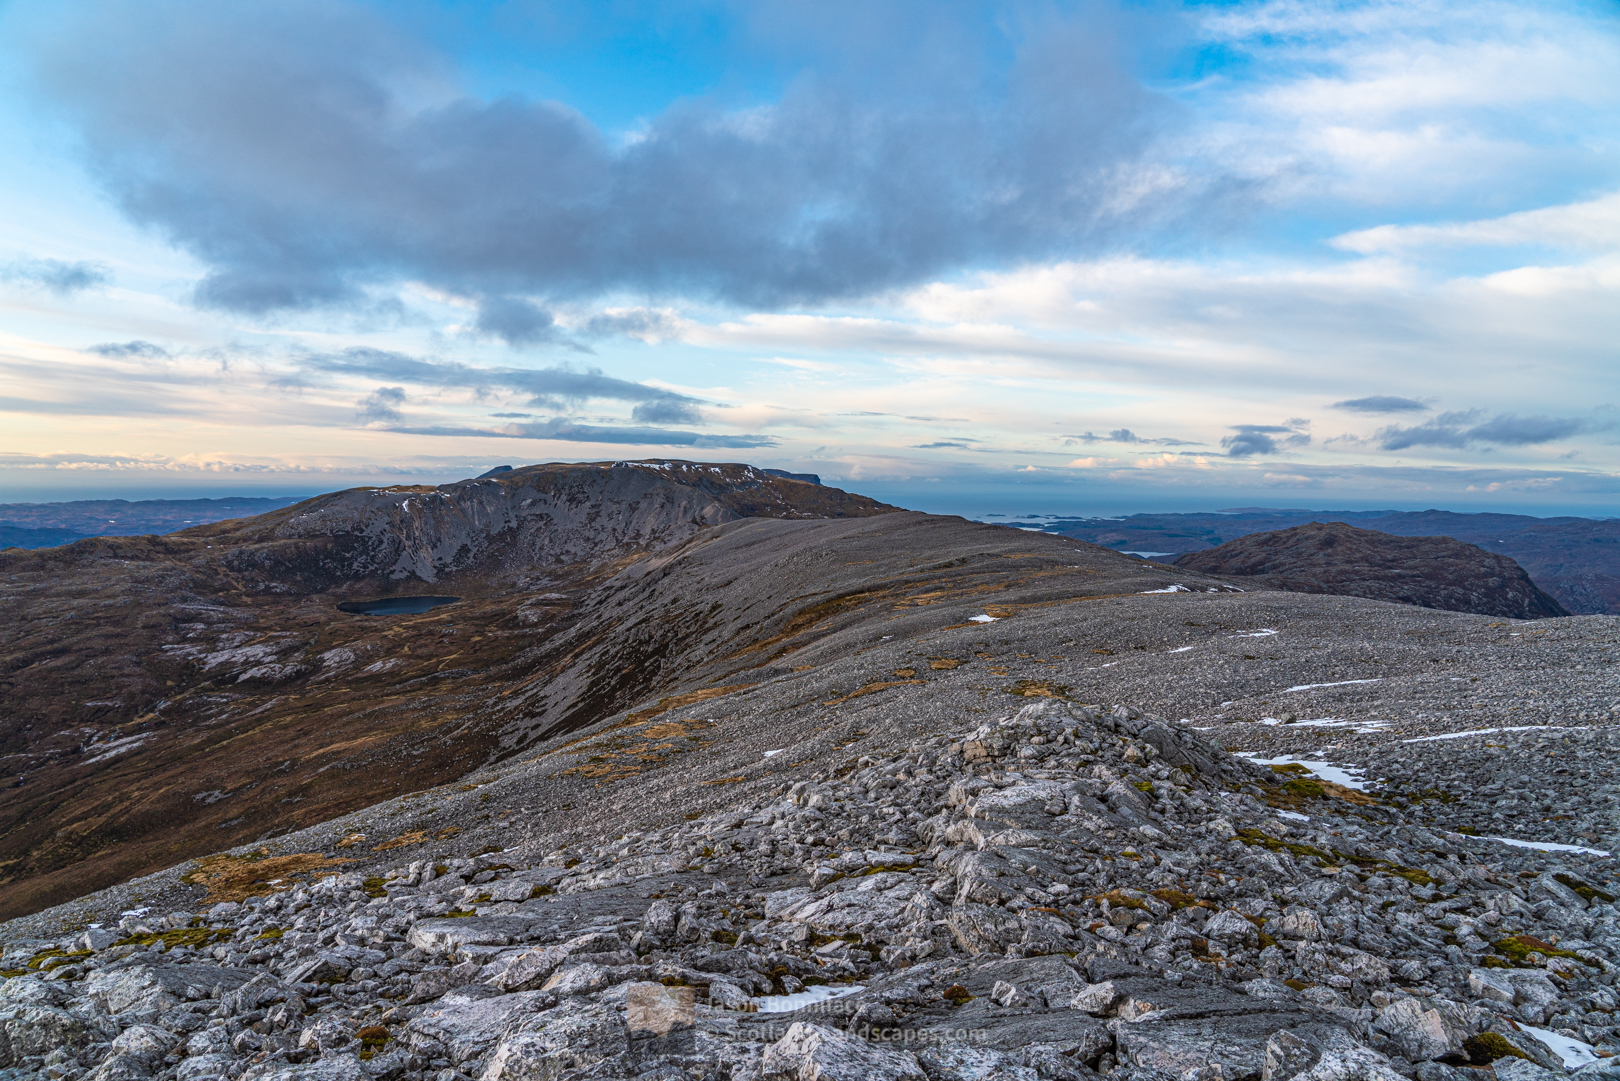 North west from the summit of Beinn Uidhe to Glas Bheinn